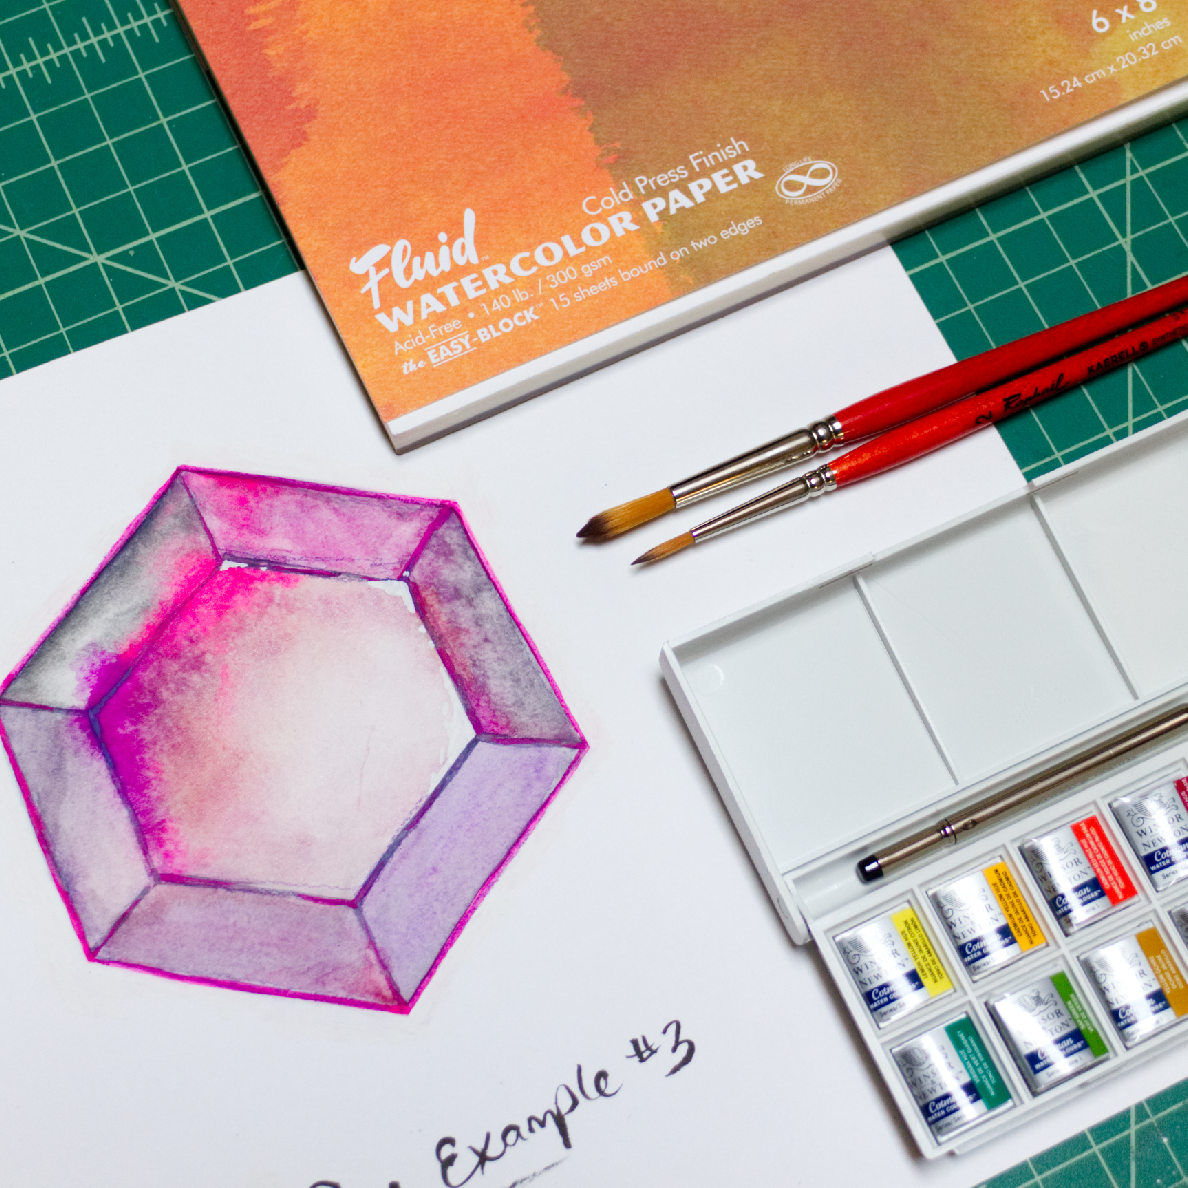 Watercolor Techniques at Bay-Made